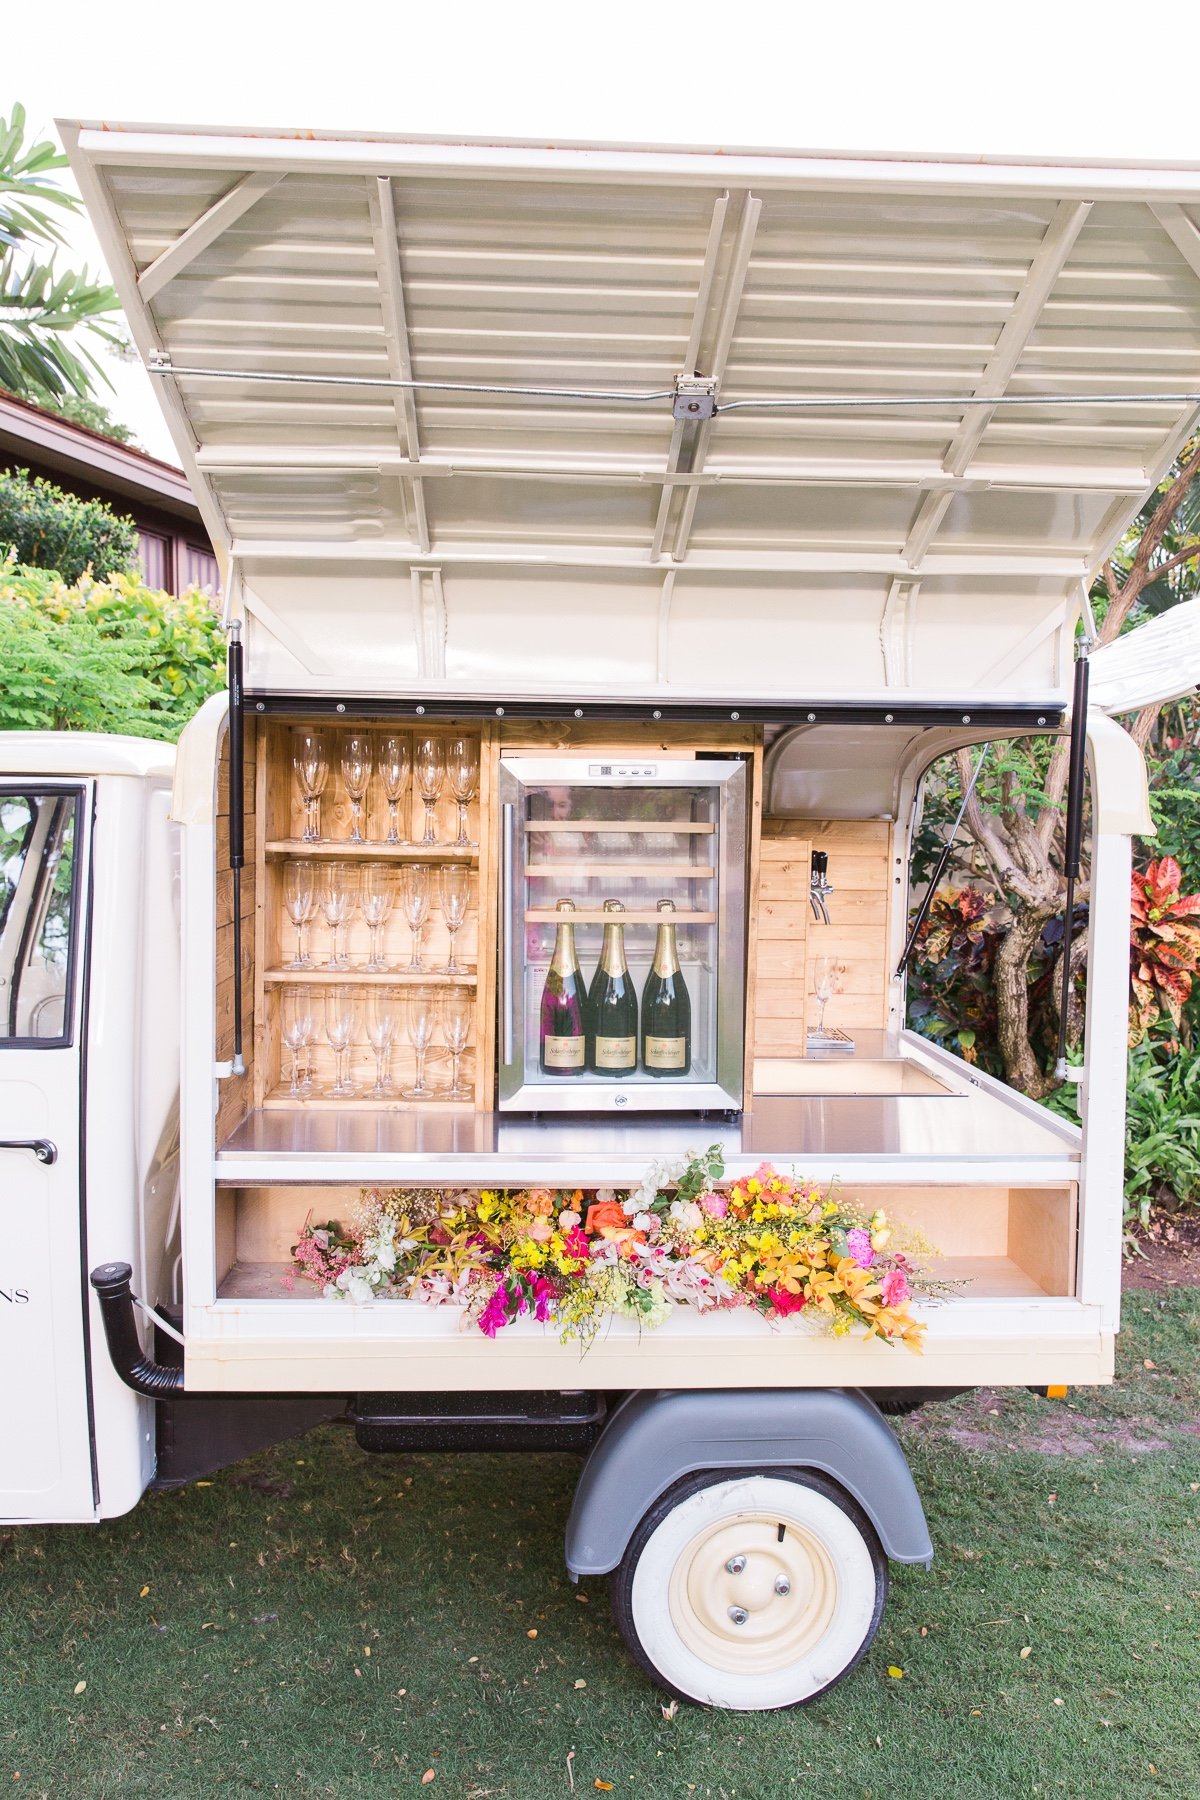 Mobile champagne cart at Four Seasons Resort, Hualalai